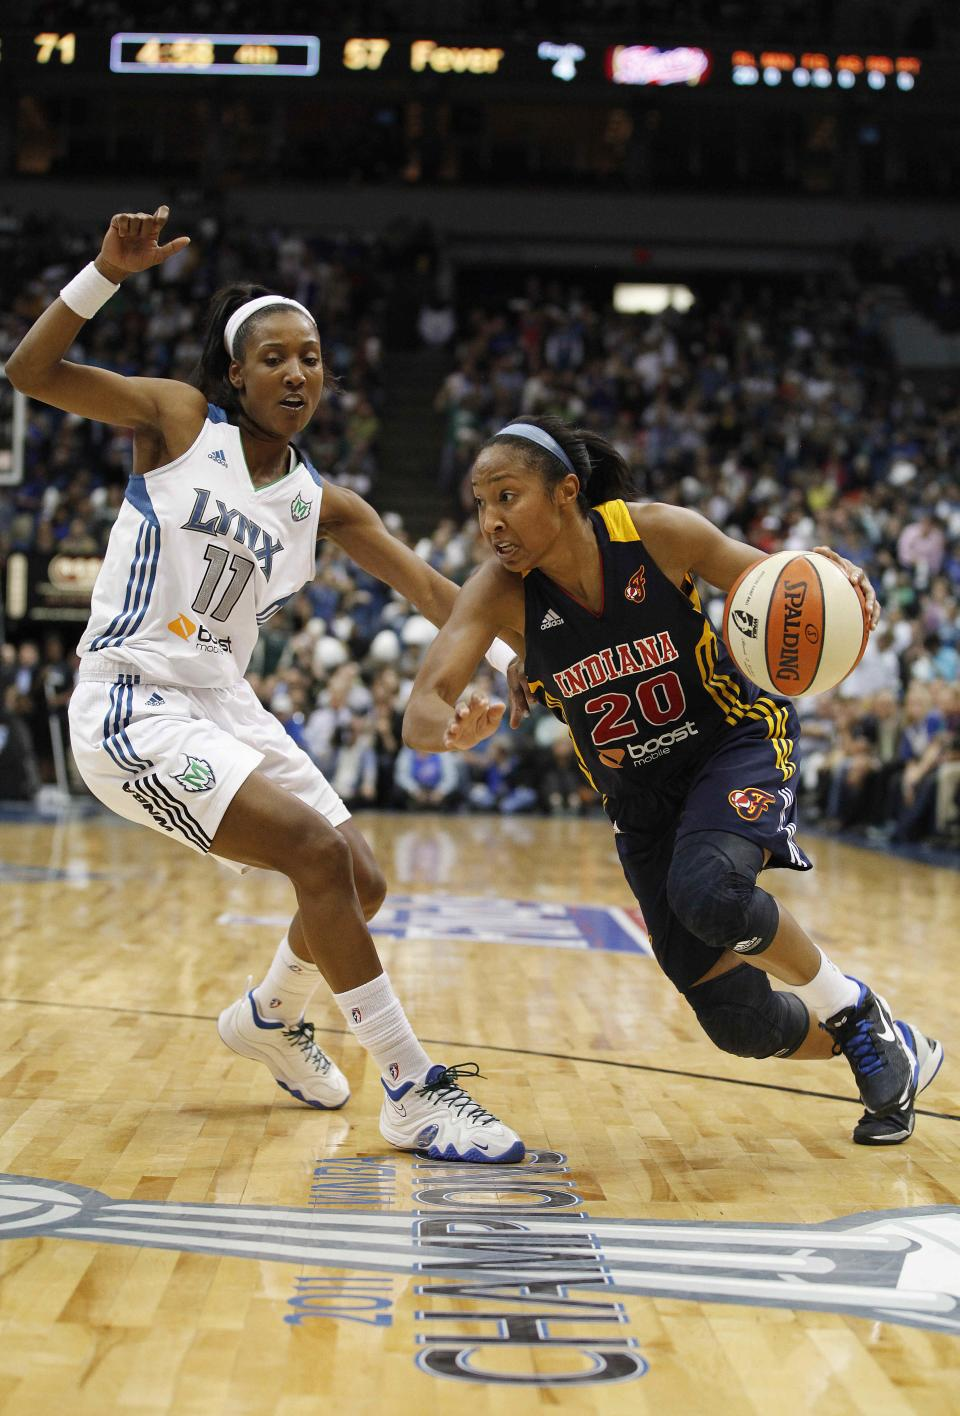 Indiana Fever guard Briann January (20) drives the ball past Minnesota Lynx guard Candice Wiggins (11) in the second half of Game 2 of the WNBA basketball Finals Wednesday, Oct. 17, 2012, in Minneapolis. The Lynx won 83-71. (AP Photo/Stacy Bengs)